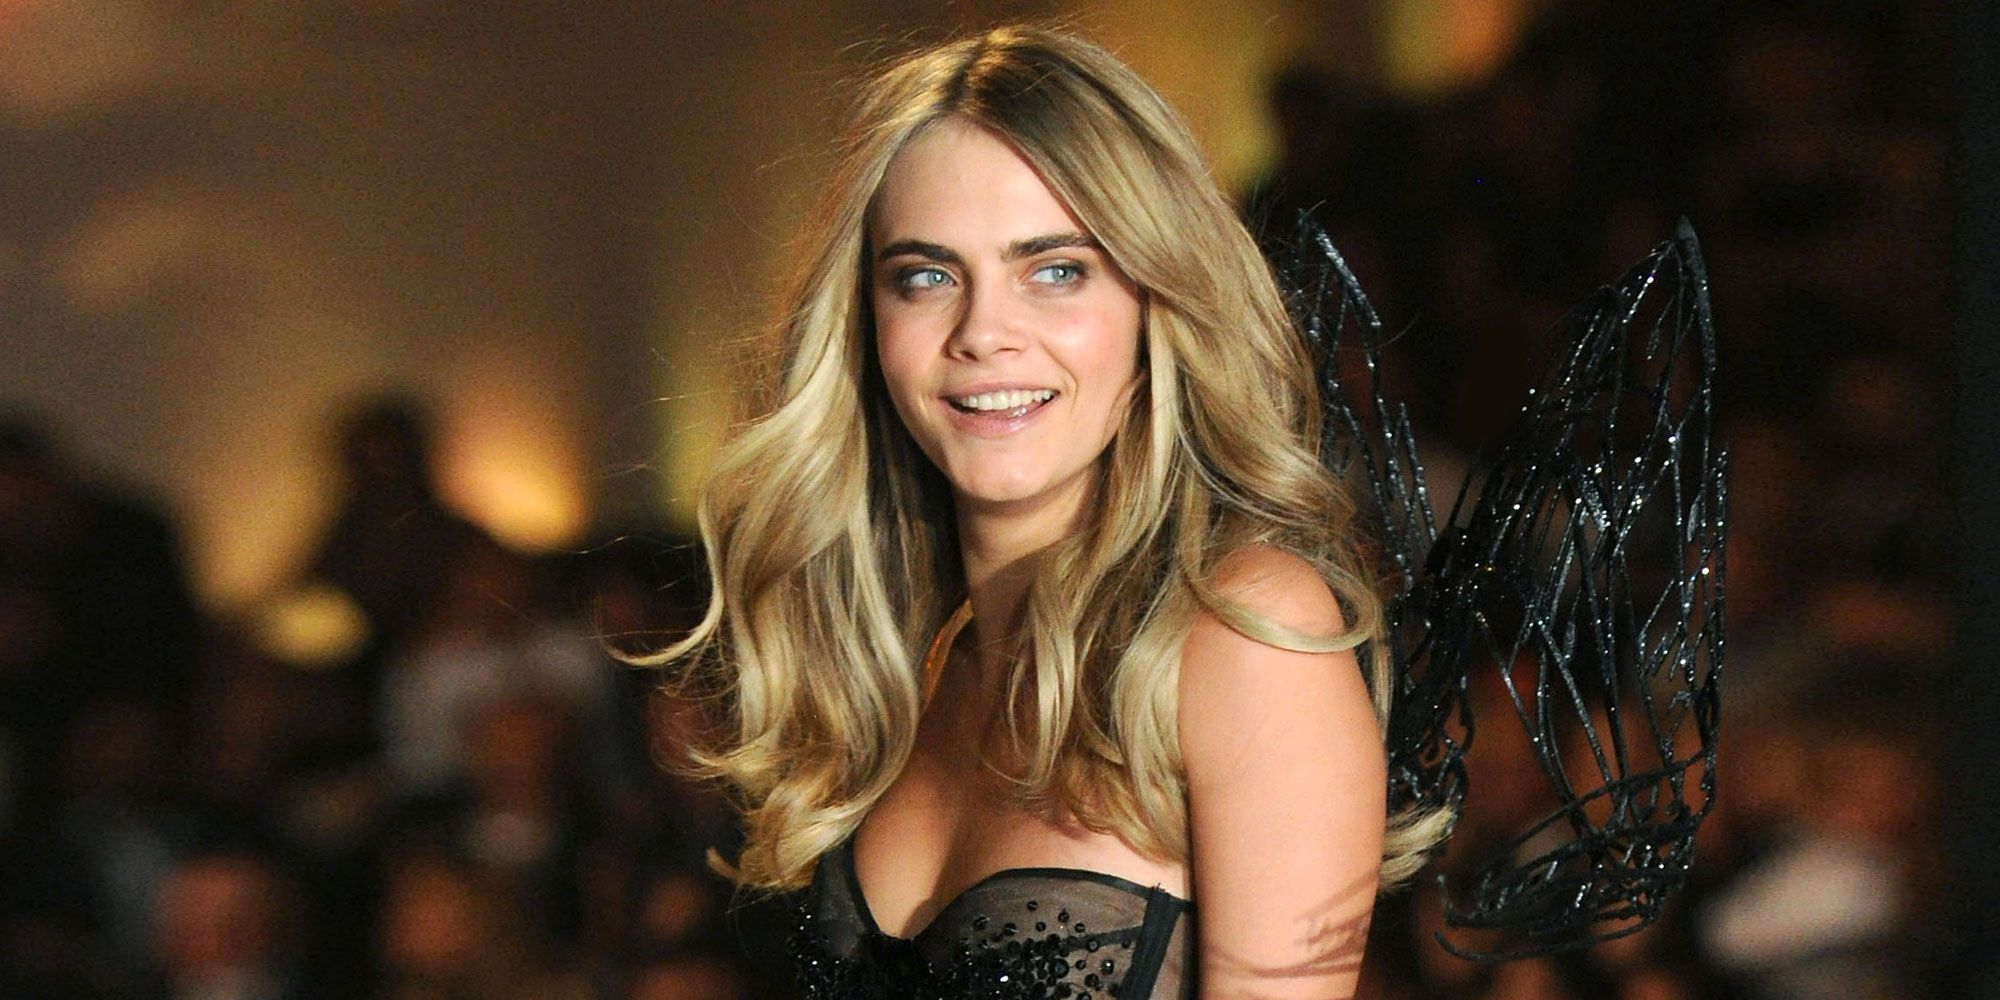 e2bdb254fc This Is Why Cara Delevingne Turned Down That Victoria s Secret Fashion Show  Invite